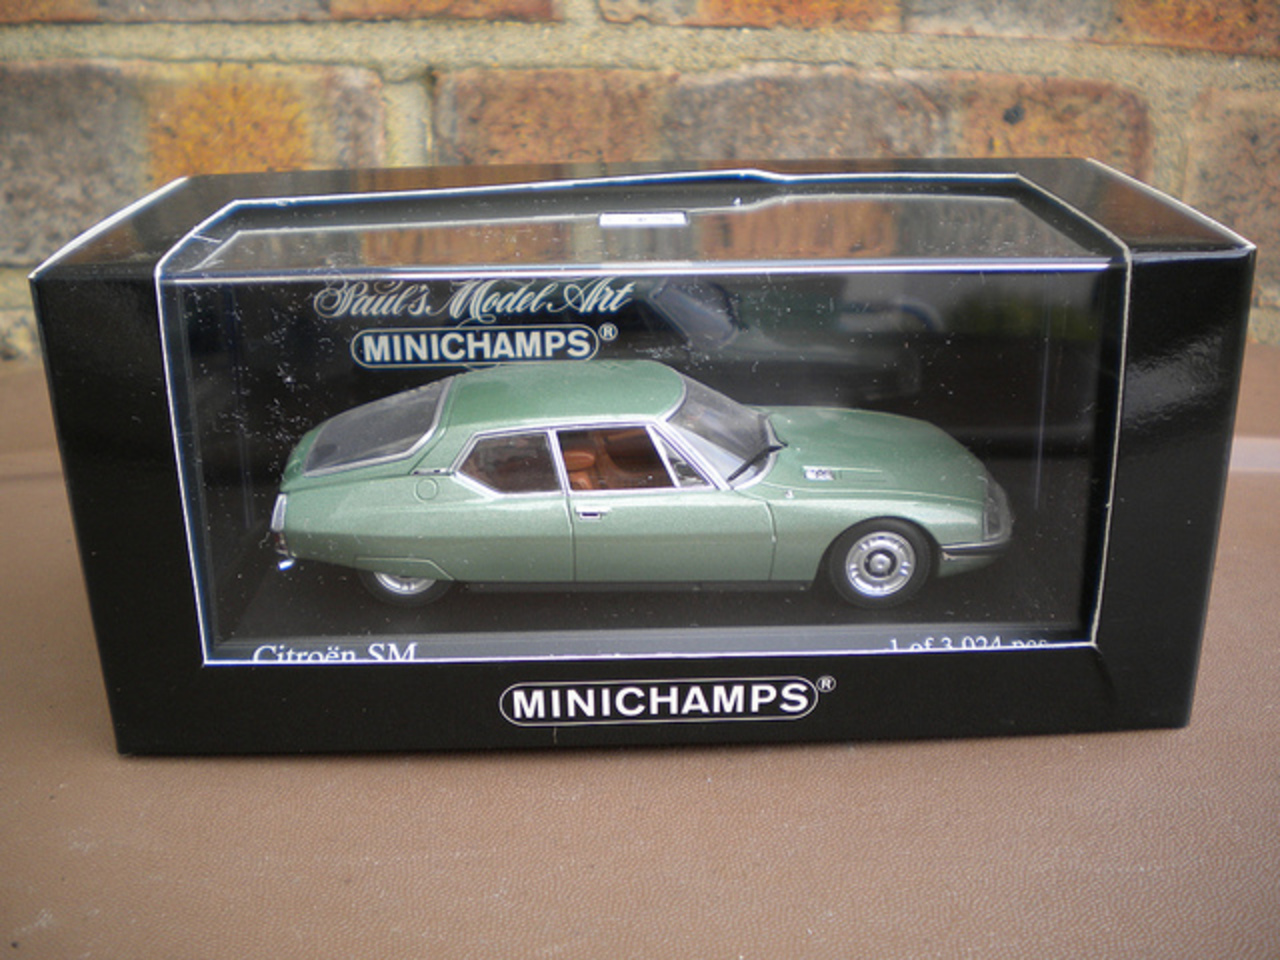 Minichamps Citroen SM Metallic Green | Flickr - Photo Sharing!